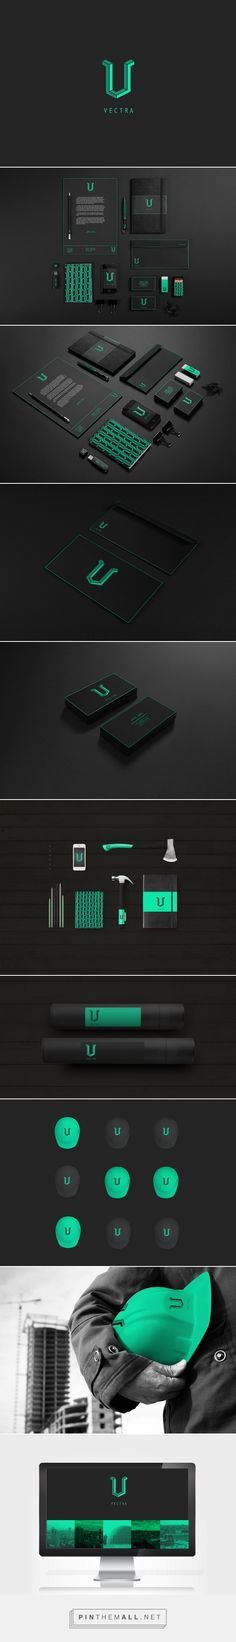 Vectra Construction on Behance  | Fivestar Branding – Design and Branding Agency & Inspiration Gallery